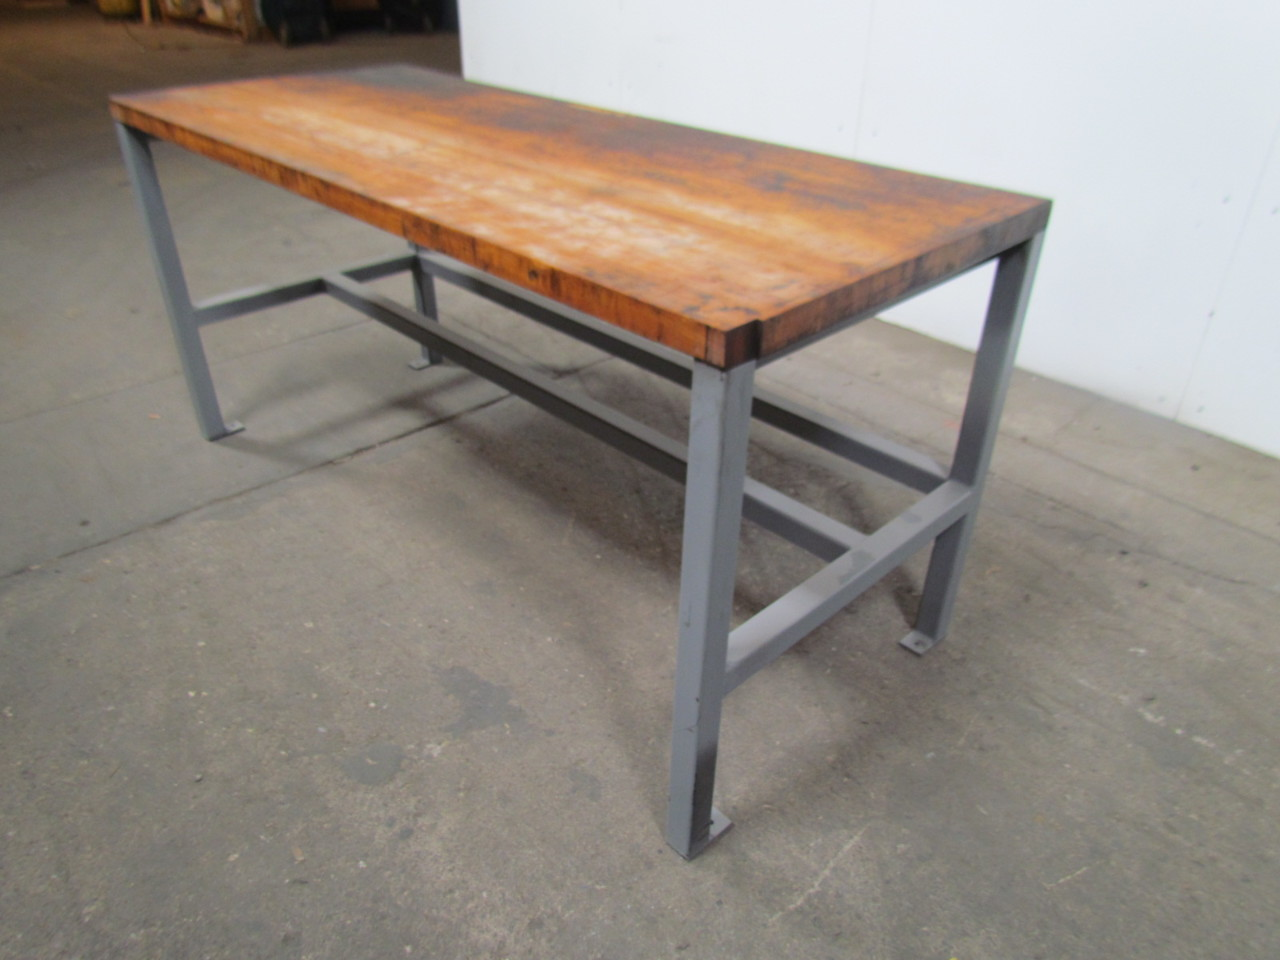 Metal Work Benches 28 Images Heavy Duty Steel Work Bench Princess Auto Bench Metal Work 28